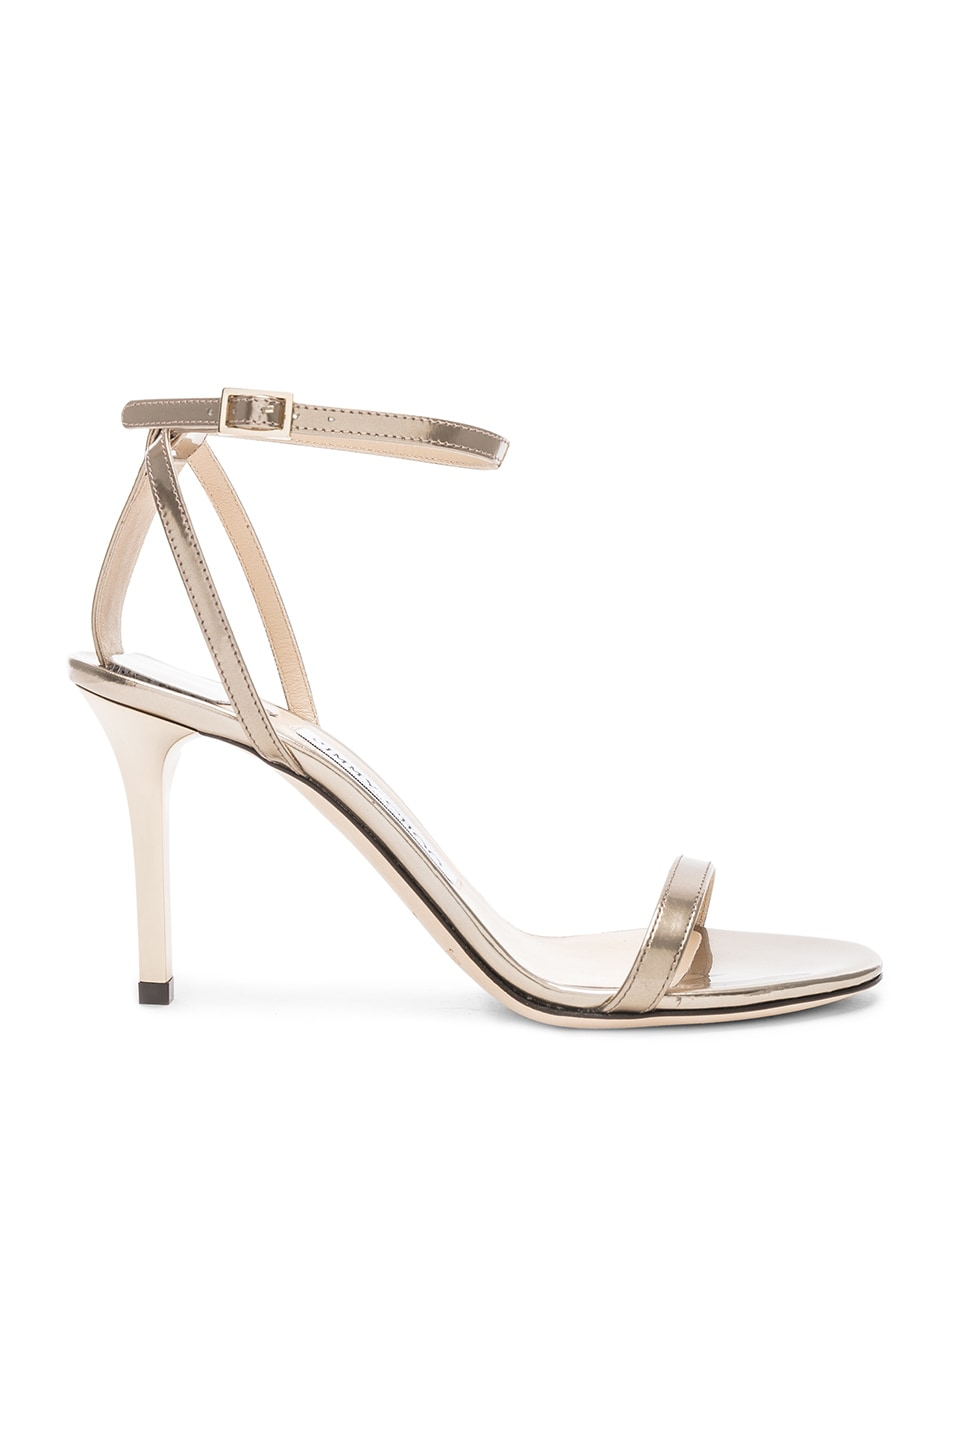 Image 1 of Jimmy Choo Minny 85 Mirror Leather Sandal in Gold